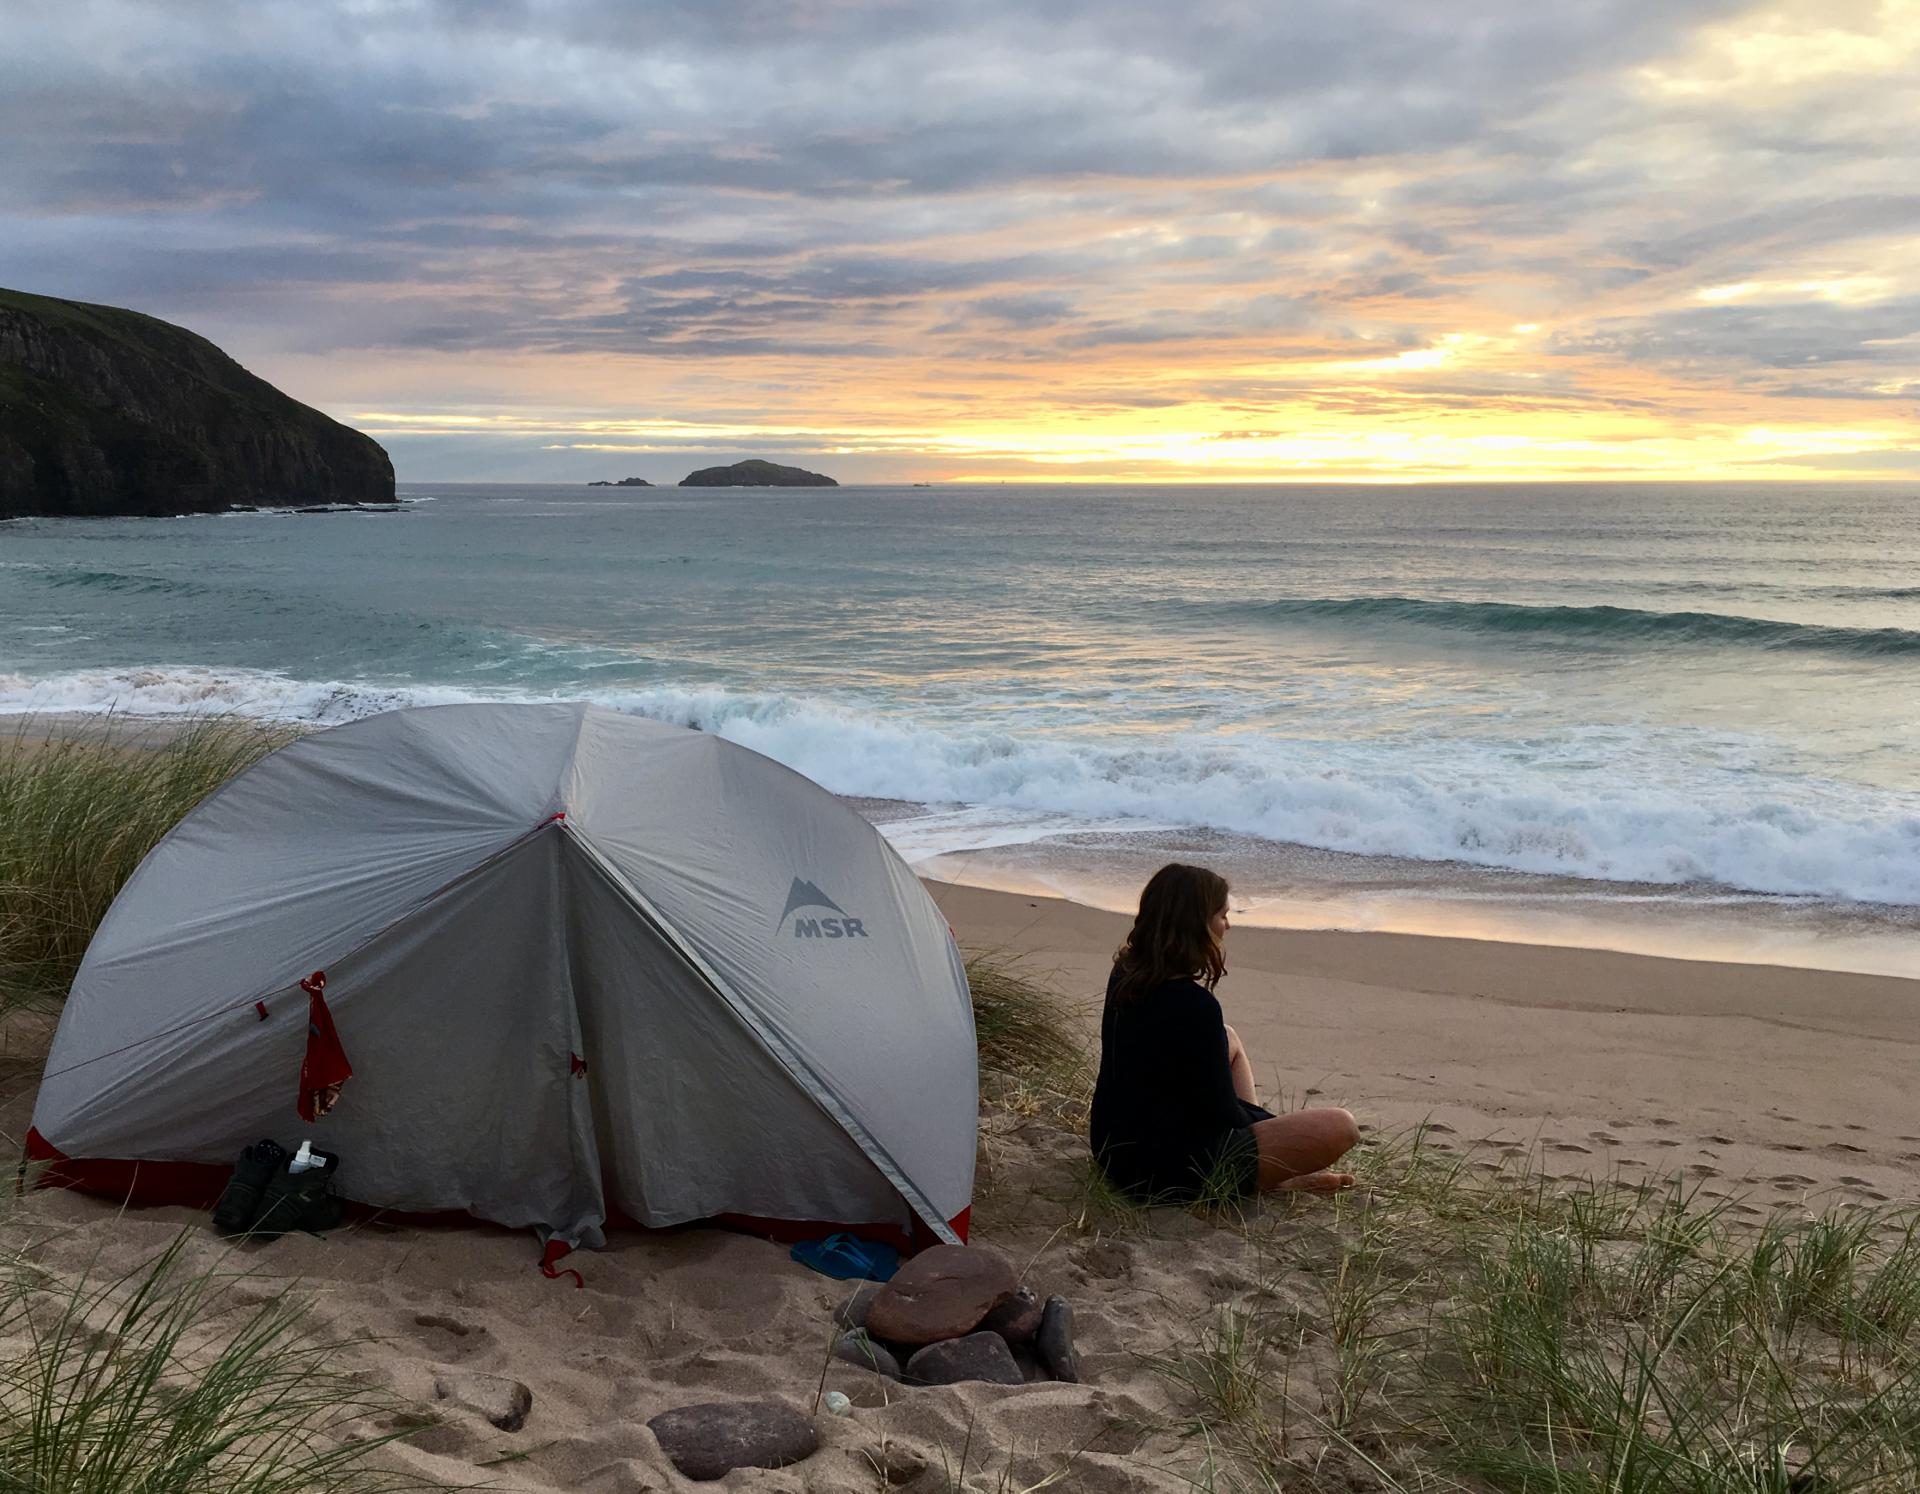 Wild camping: finding the confidence to go solo